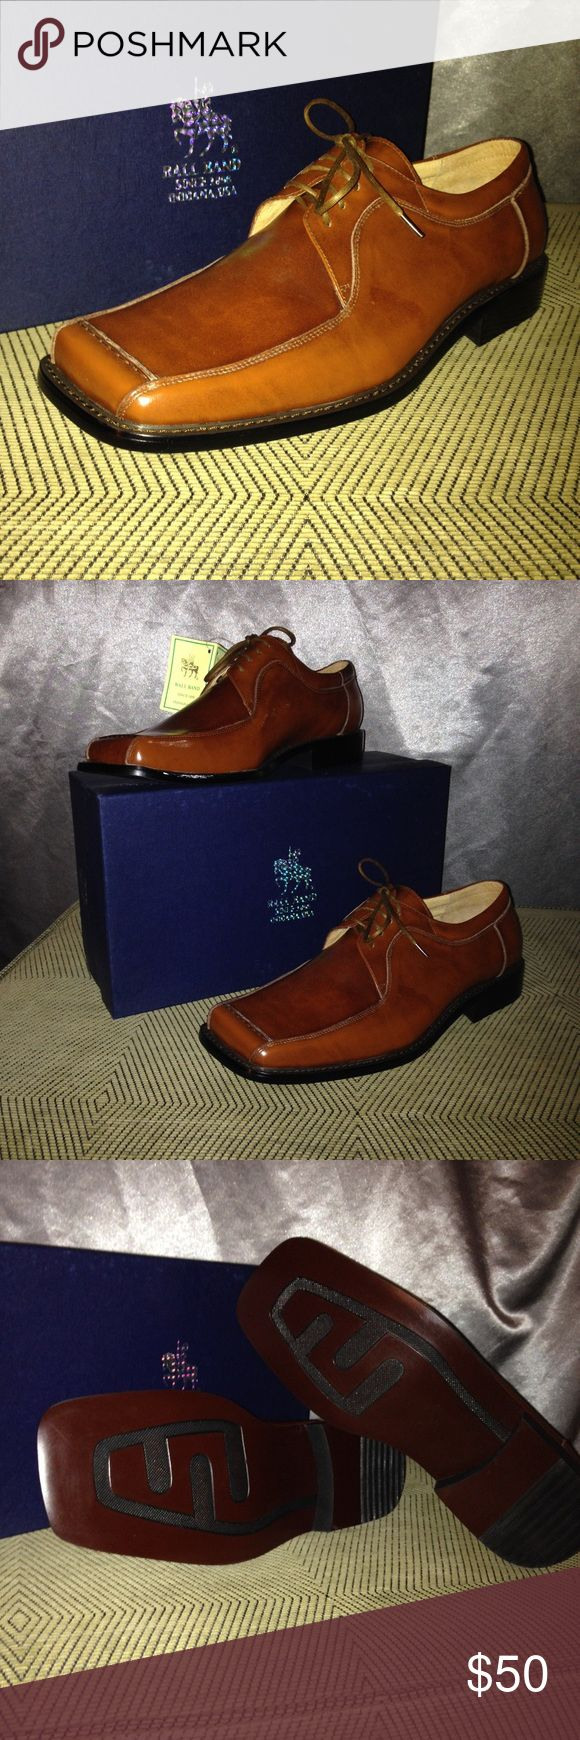 New Men's brown leather dress shoe Ball brand men's leather shoes, New with box never worn BallBrand Shoes Oxfords & Derbys